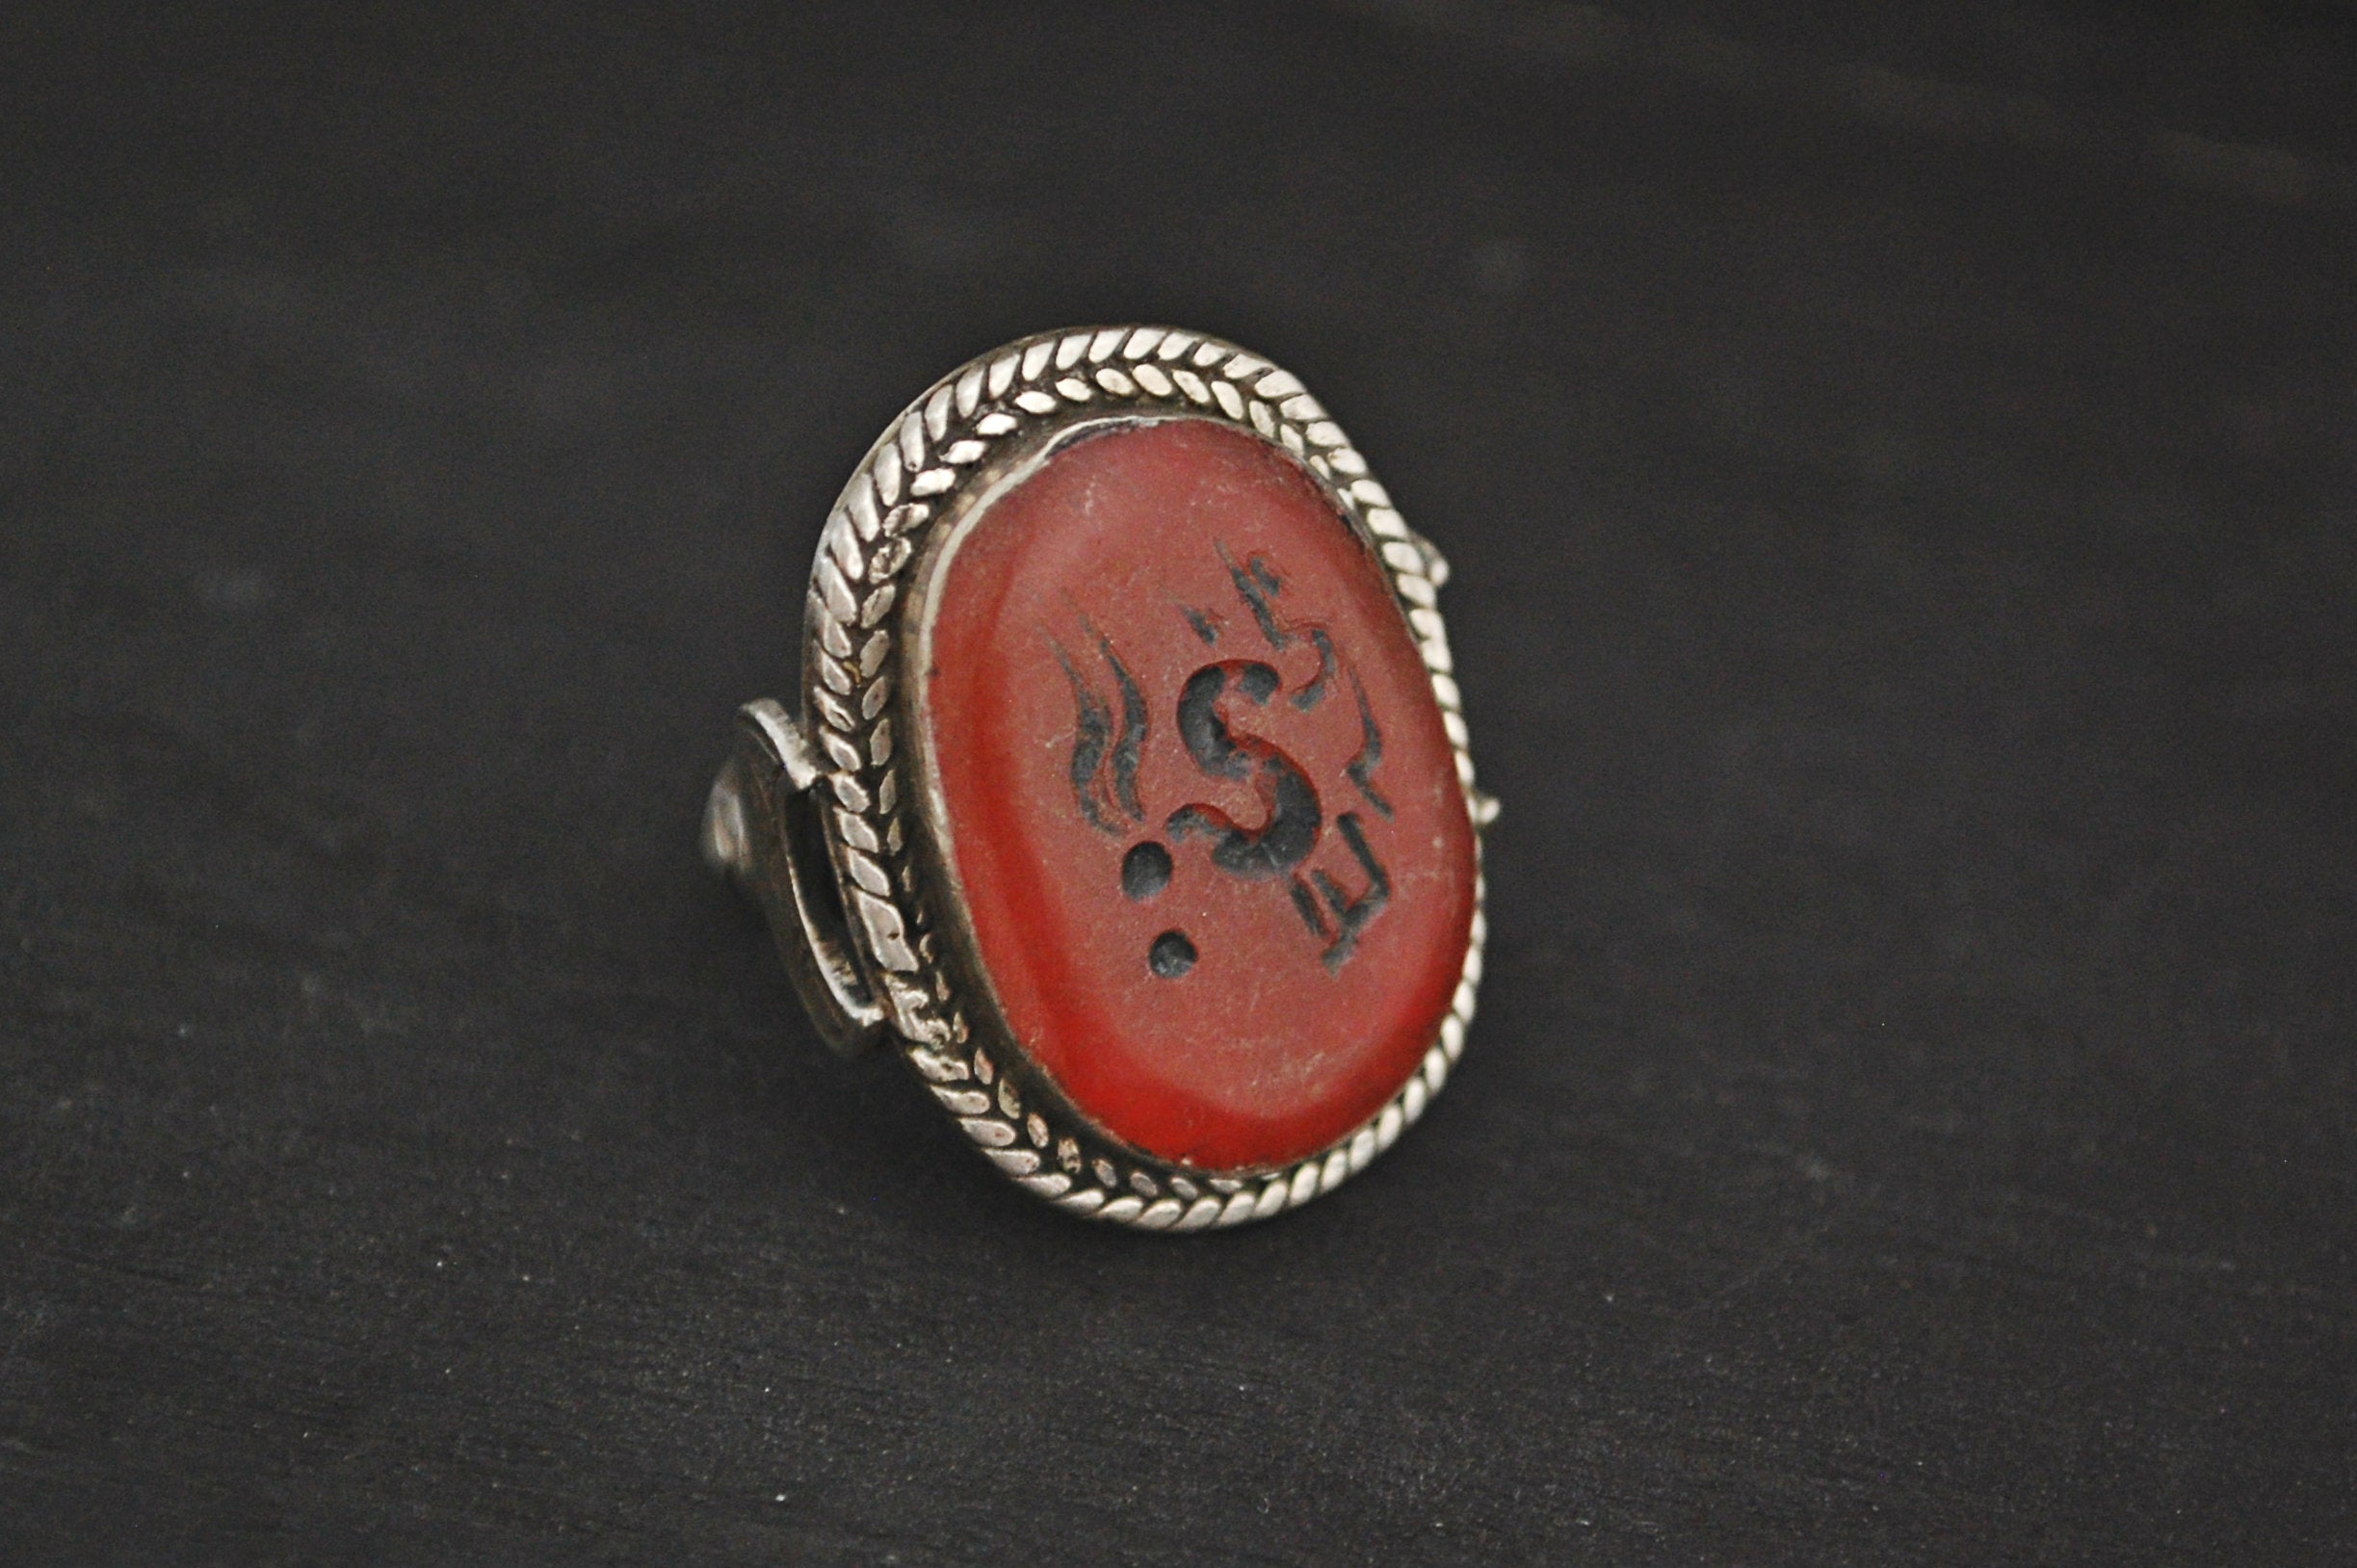 Afghani Carnelian Intaglio Ring with Crescent Moon - Size 7.5